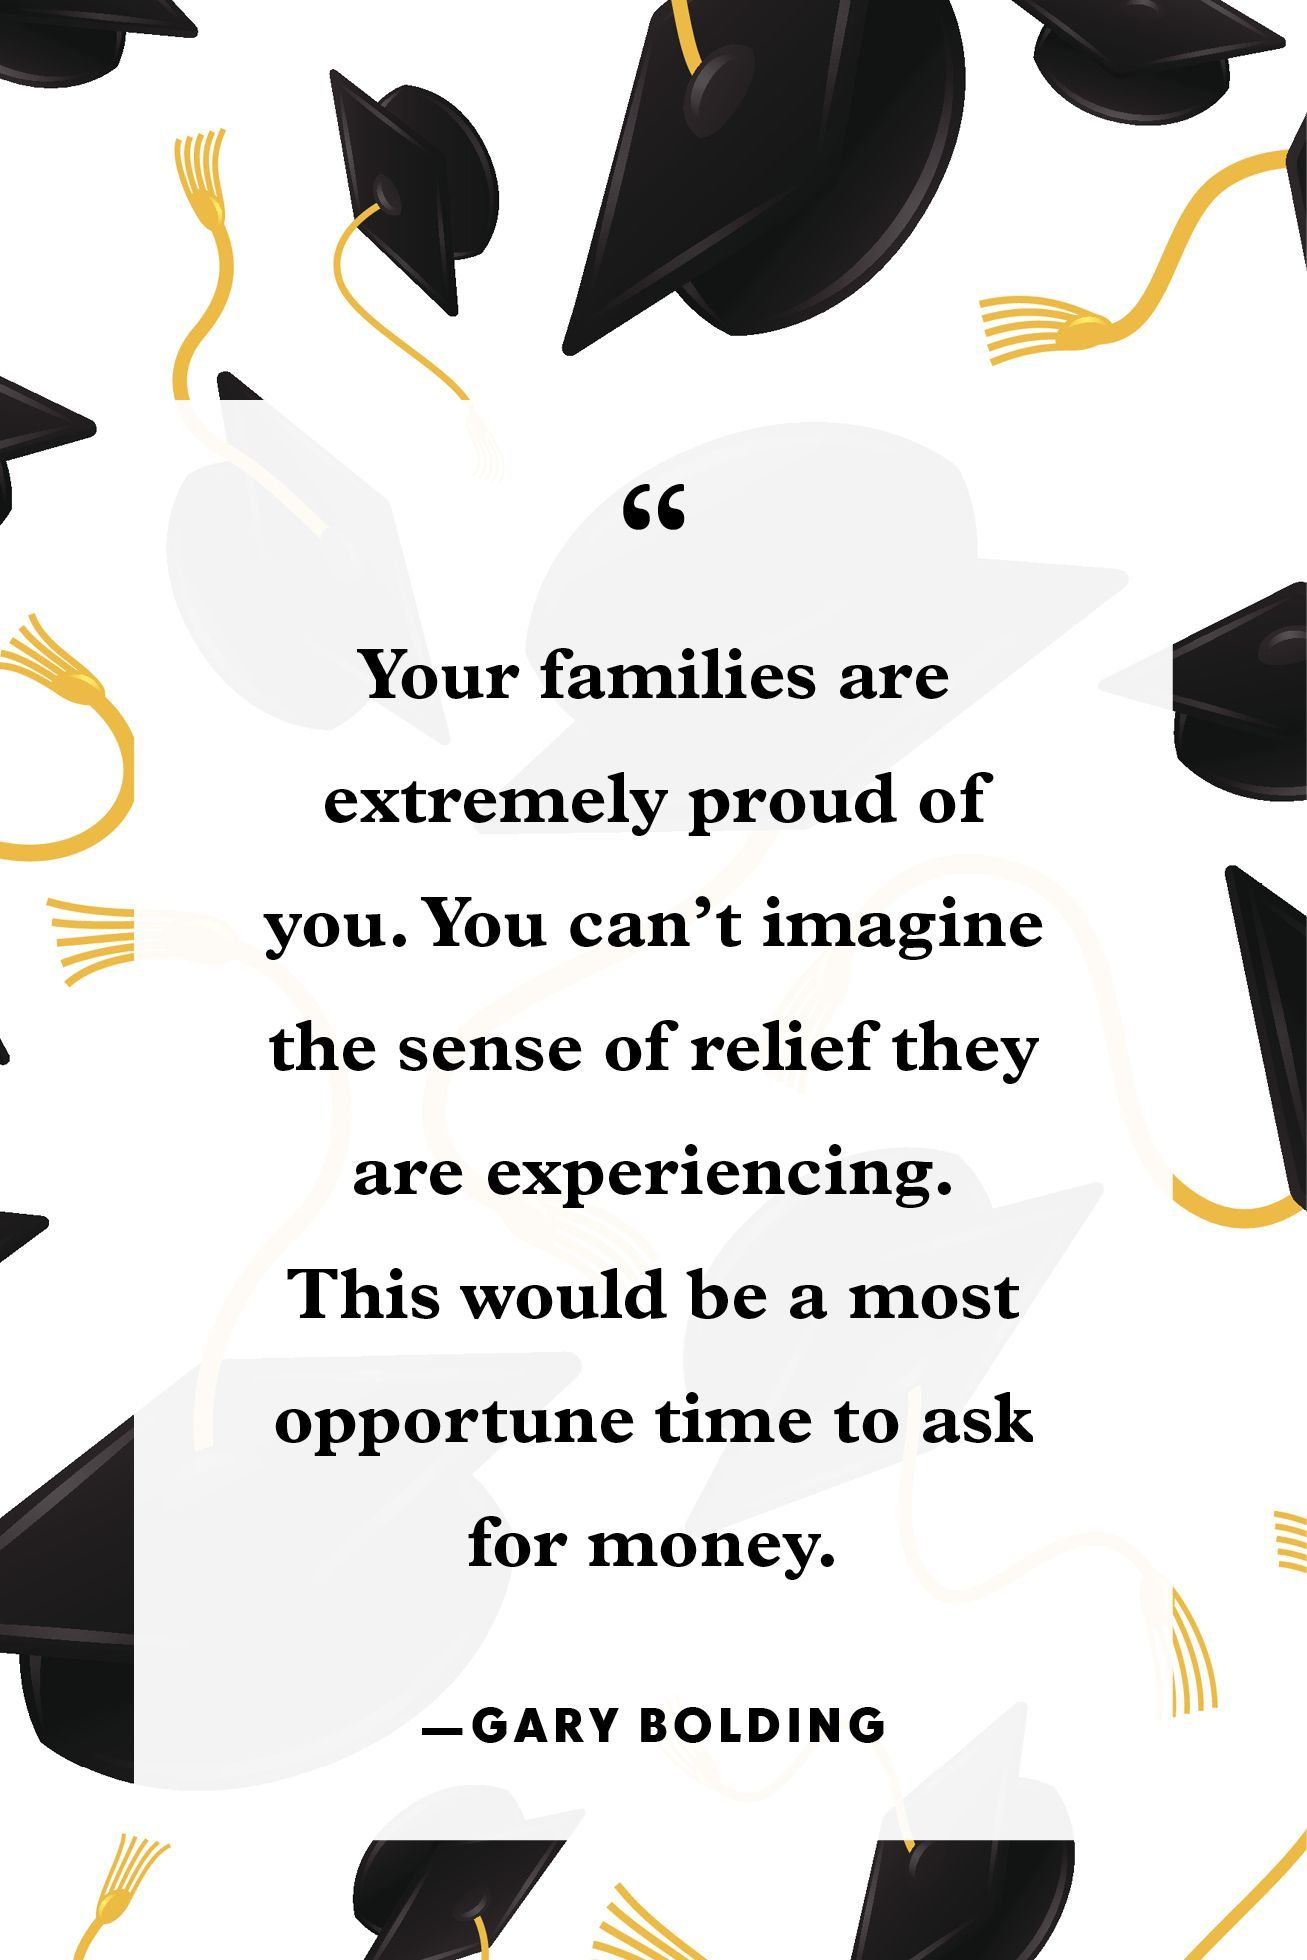 30 Funny Graduation Quotes To Make Your Recent Grad Smile Graduation Quotes Funny Graduation Quotes Graduation Funny